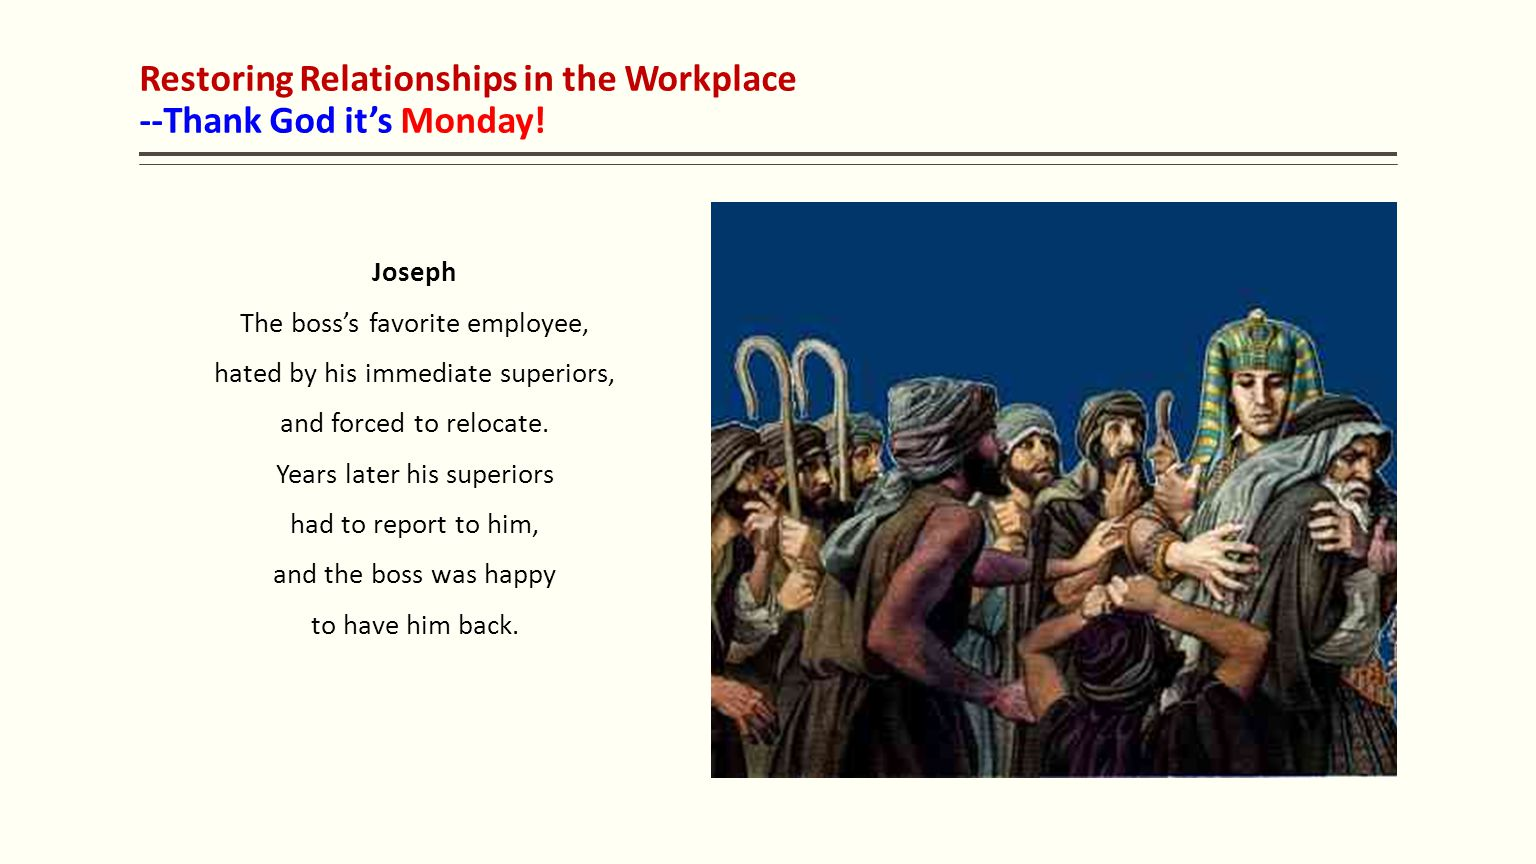 Restoring Relationships in the Workplace --Thank God it's Monday! Joseph The boss's favorite employee, hated by his immediate superiors, and forced to